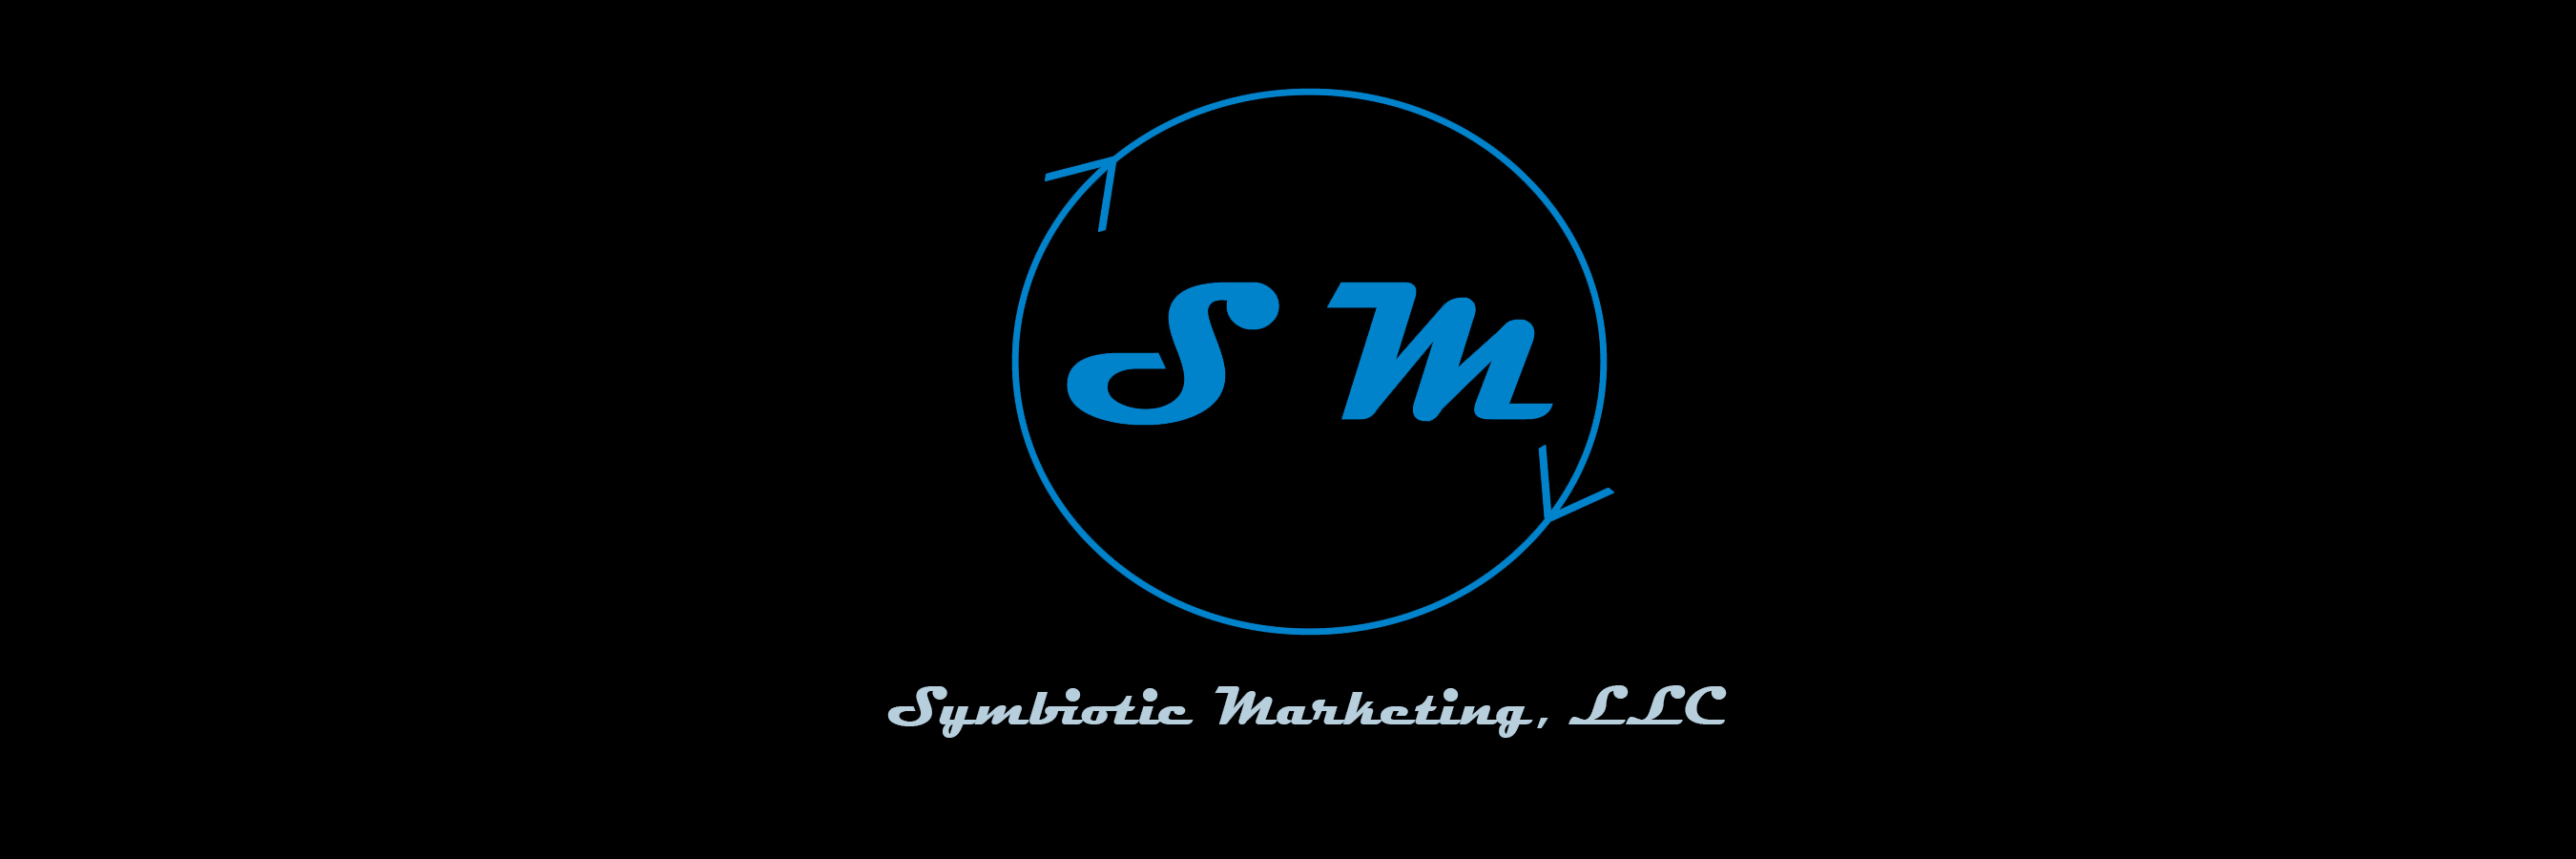 Dreams – The Symbiotic Marketing Why